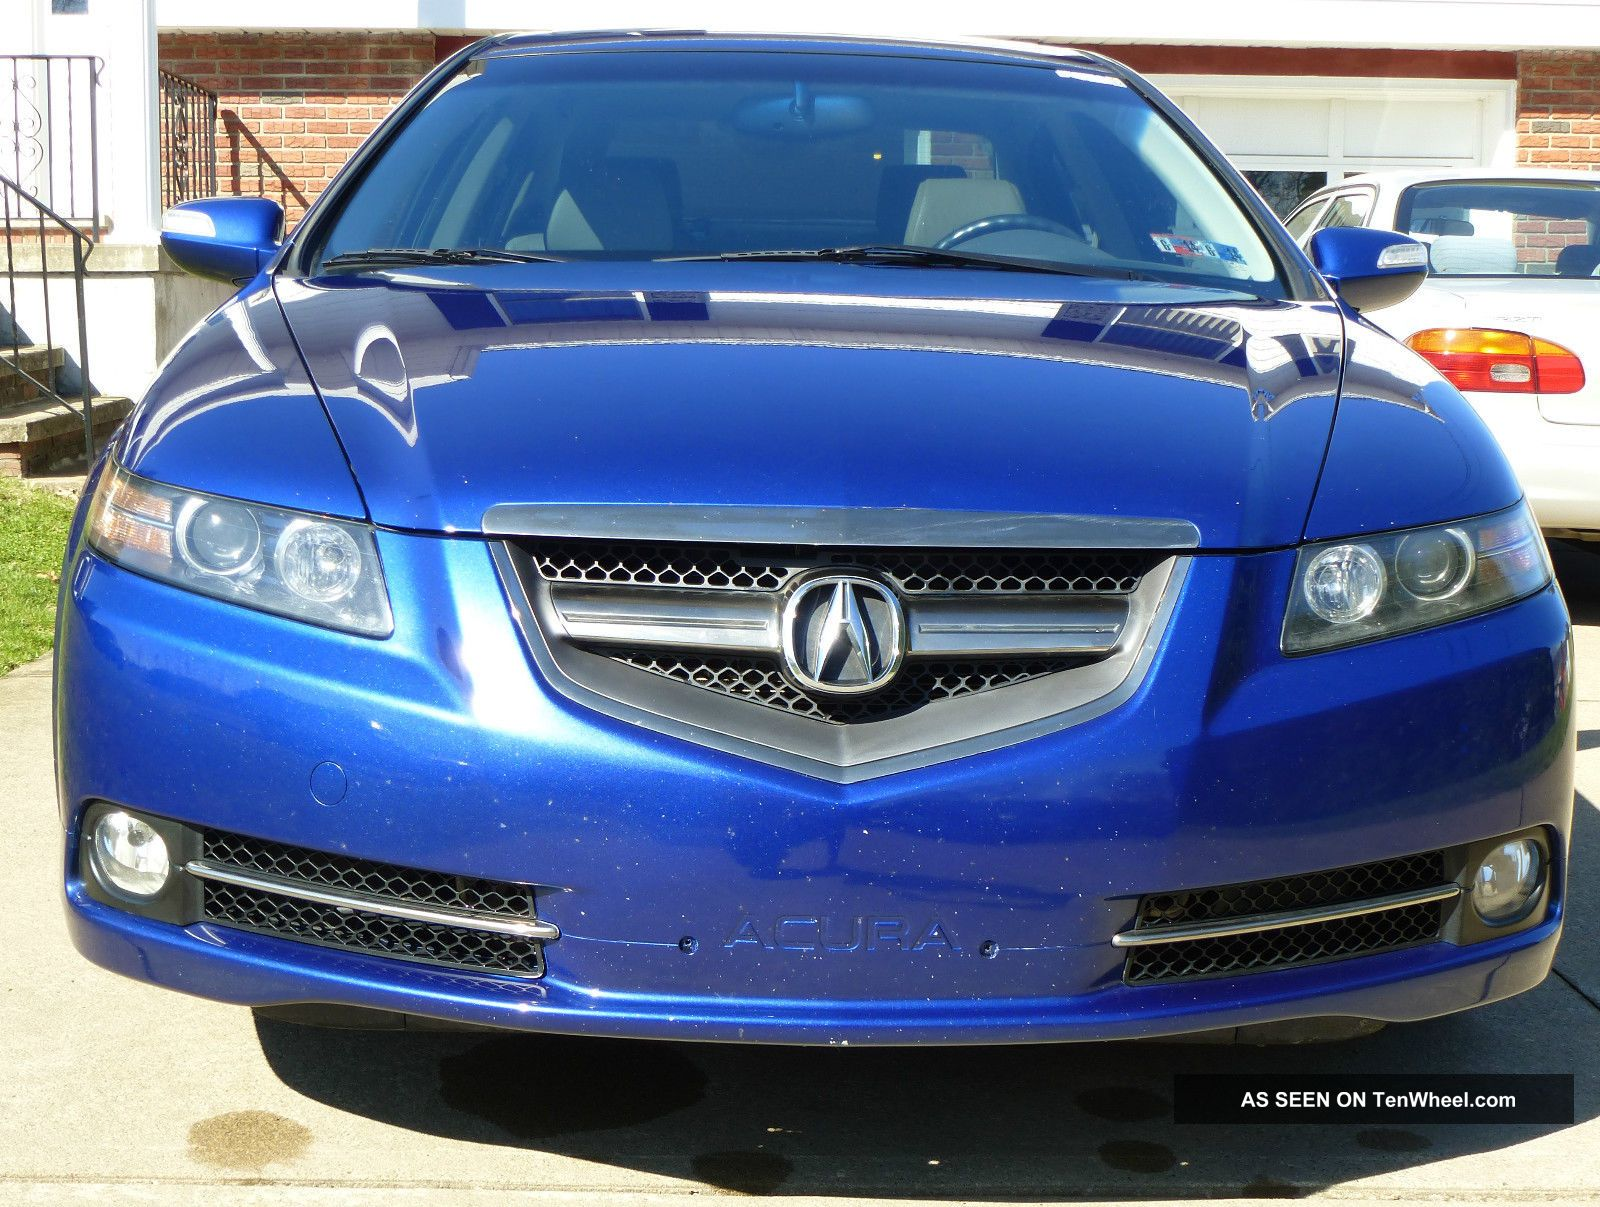 2007 acura tl type s 4 door 3 5l v6 6spd manual transmission. Black Bedroom Furniture Sets. Home Design Ideas